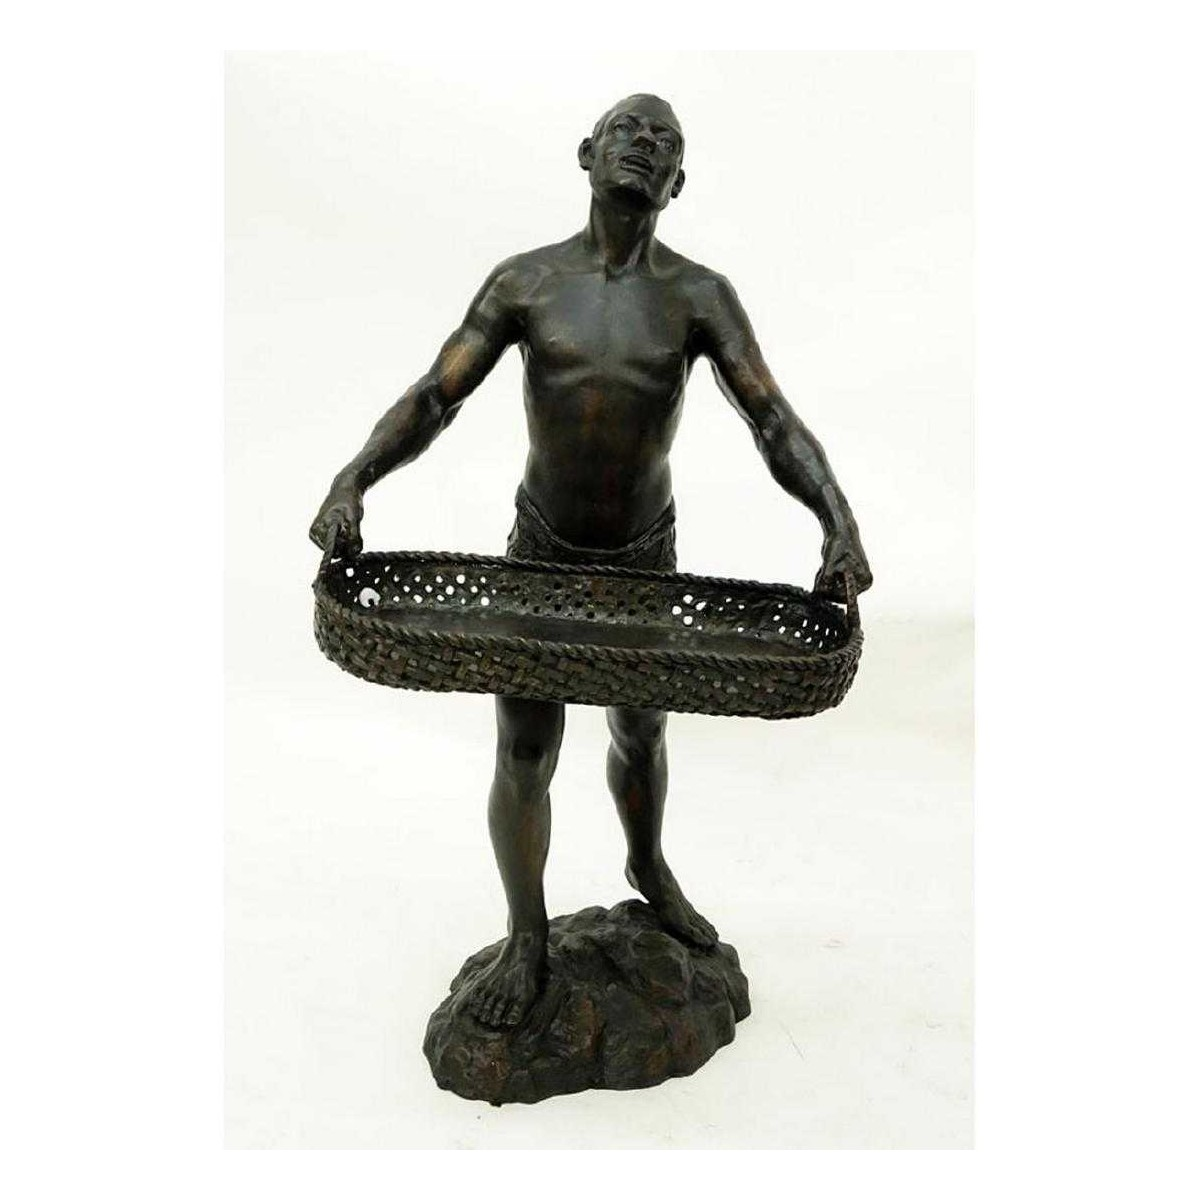 A Patinated Bronze Sculpture, Nubian Male